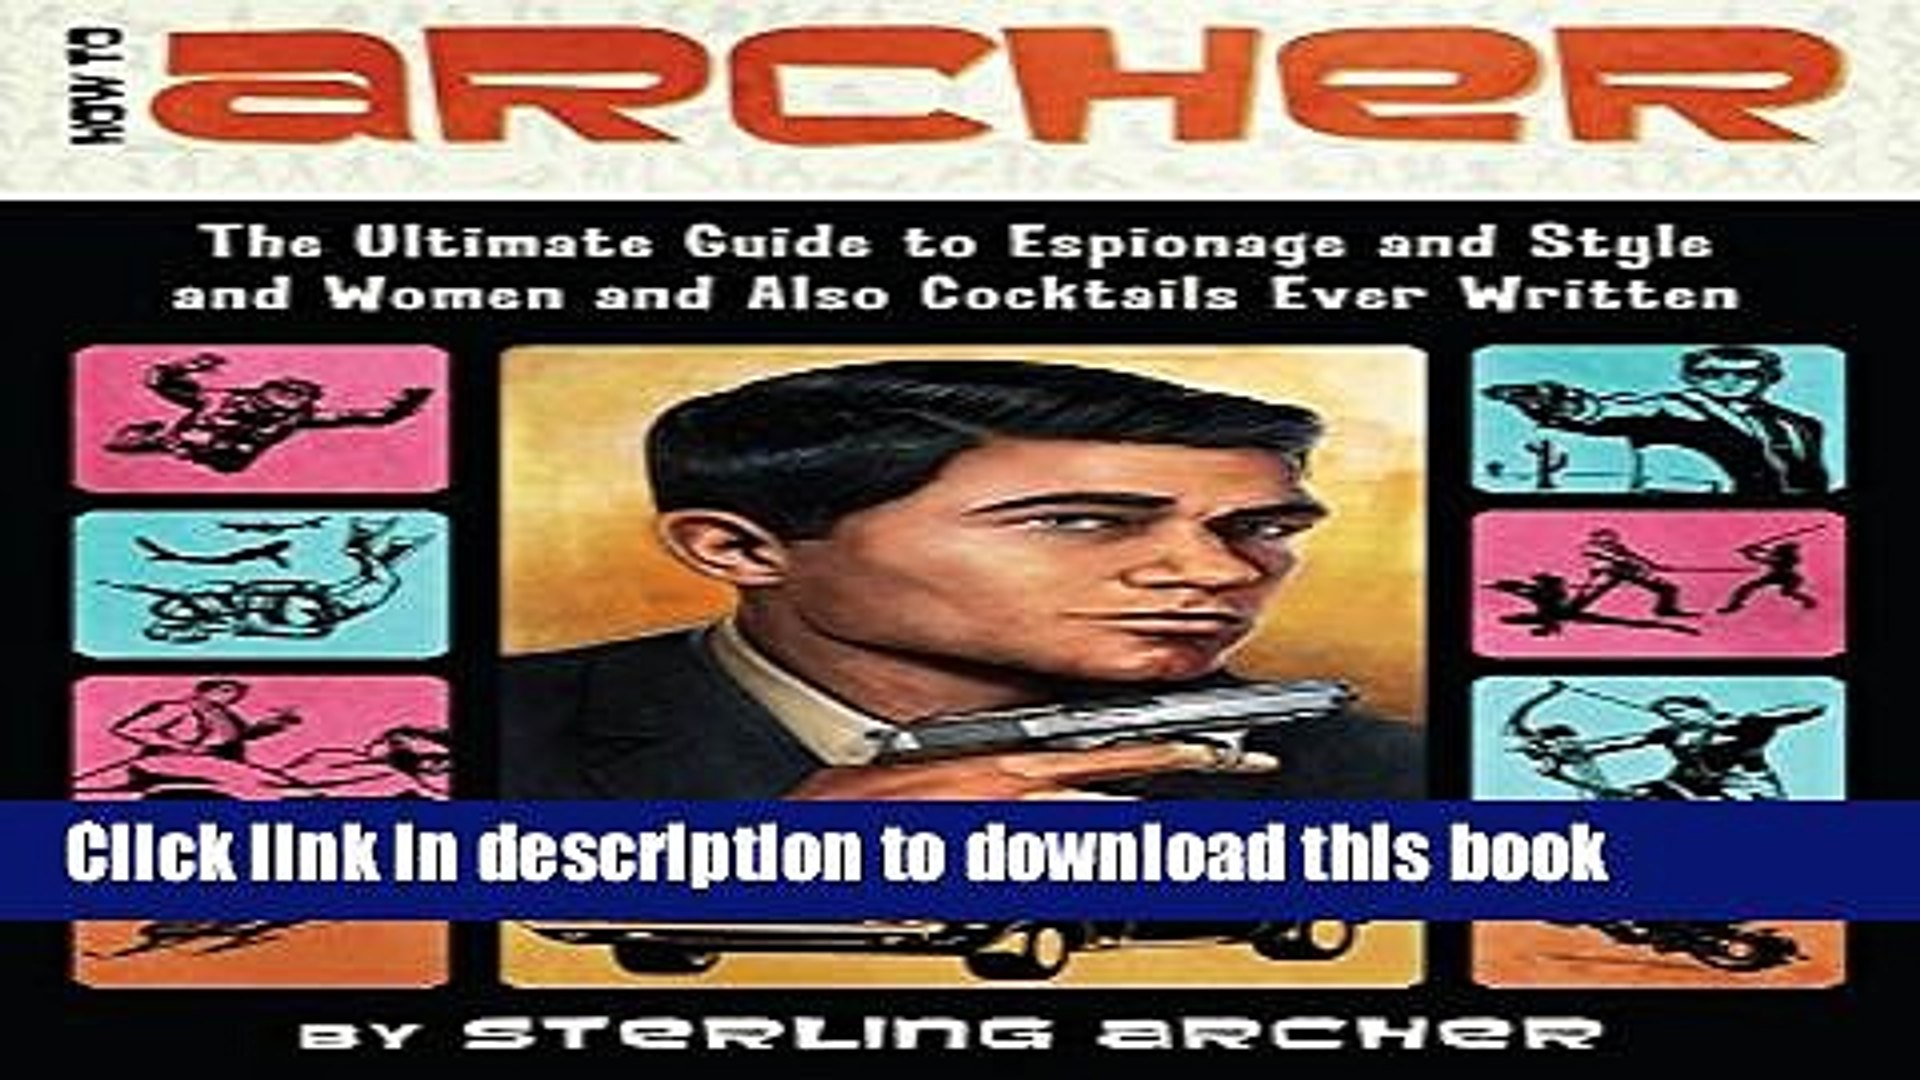 [Fresh] How to Archer: The Ultimate Guide to Espionage and Style and Women and Also Cocktails Ever